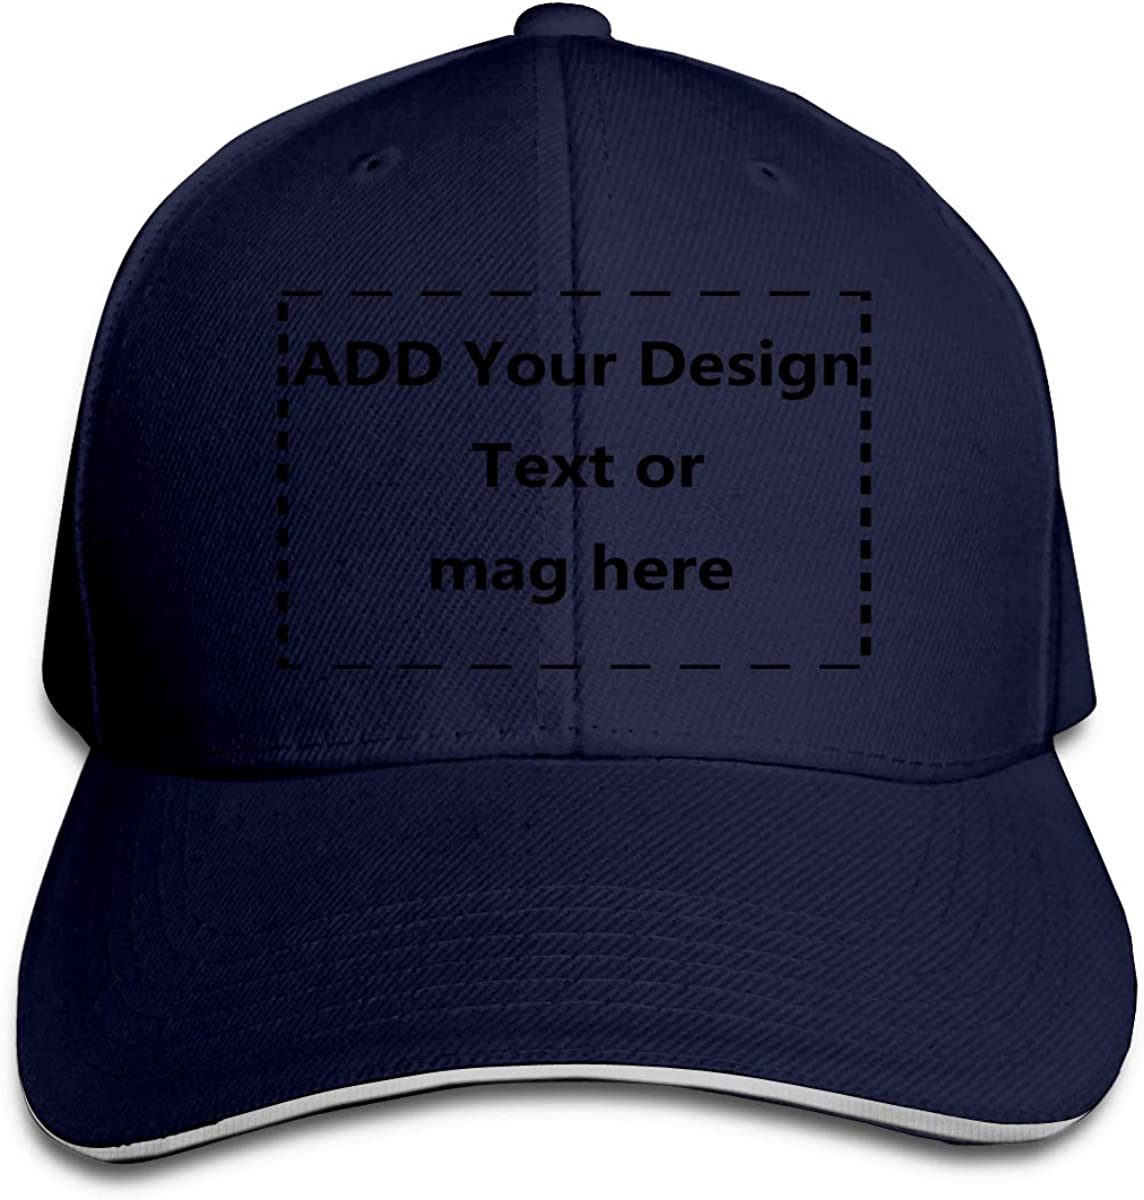 Custom unisex Youth Hats Text-Personalized Design Add hat Max 58% OFF Your Monogram